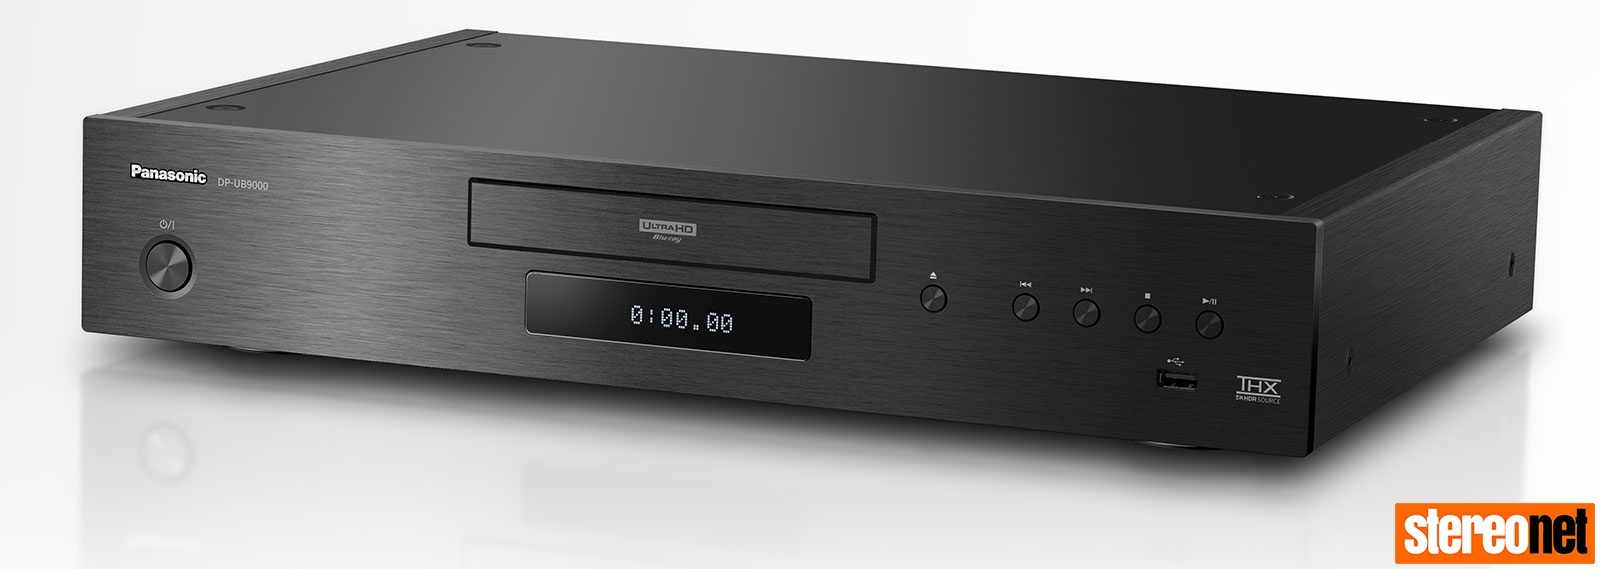 Panasonic DP-UB9000 4K Ultra HD Blu-ray Player Australia